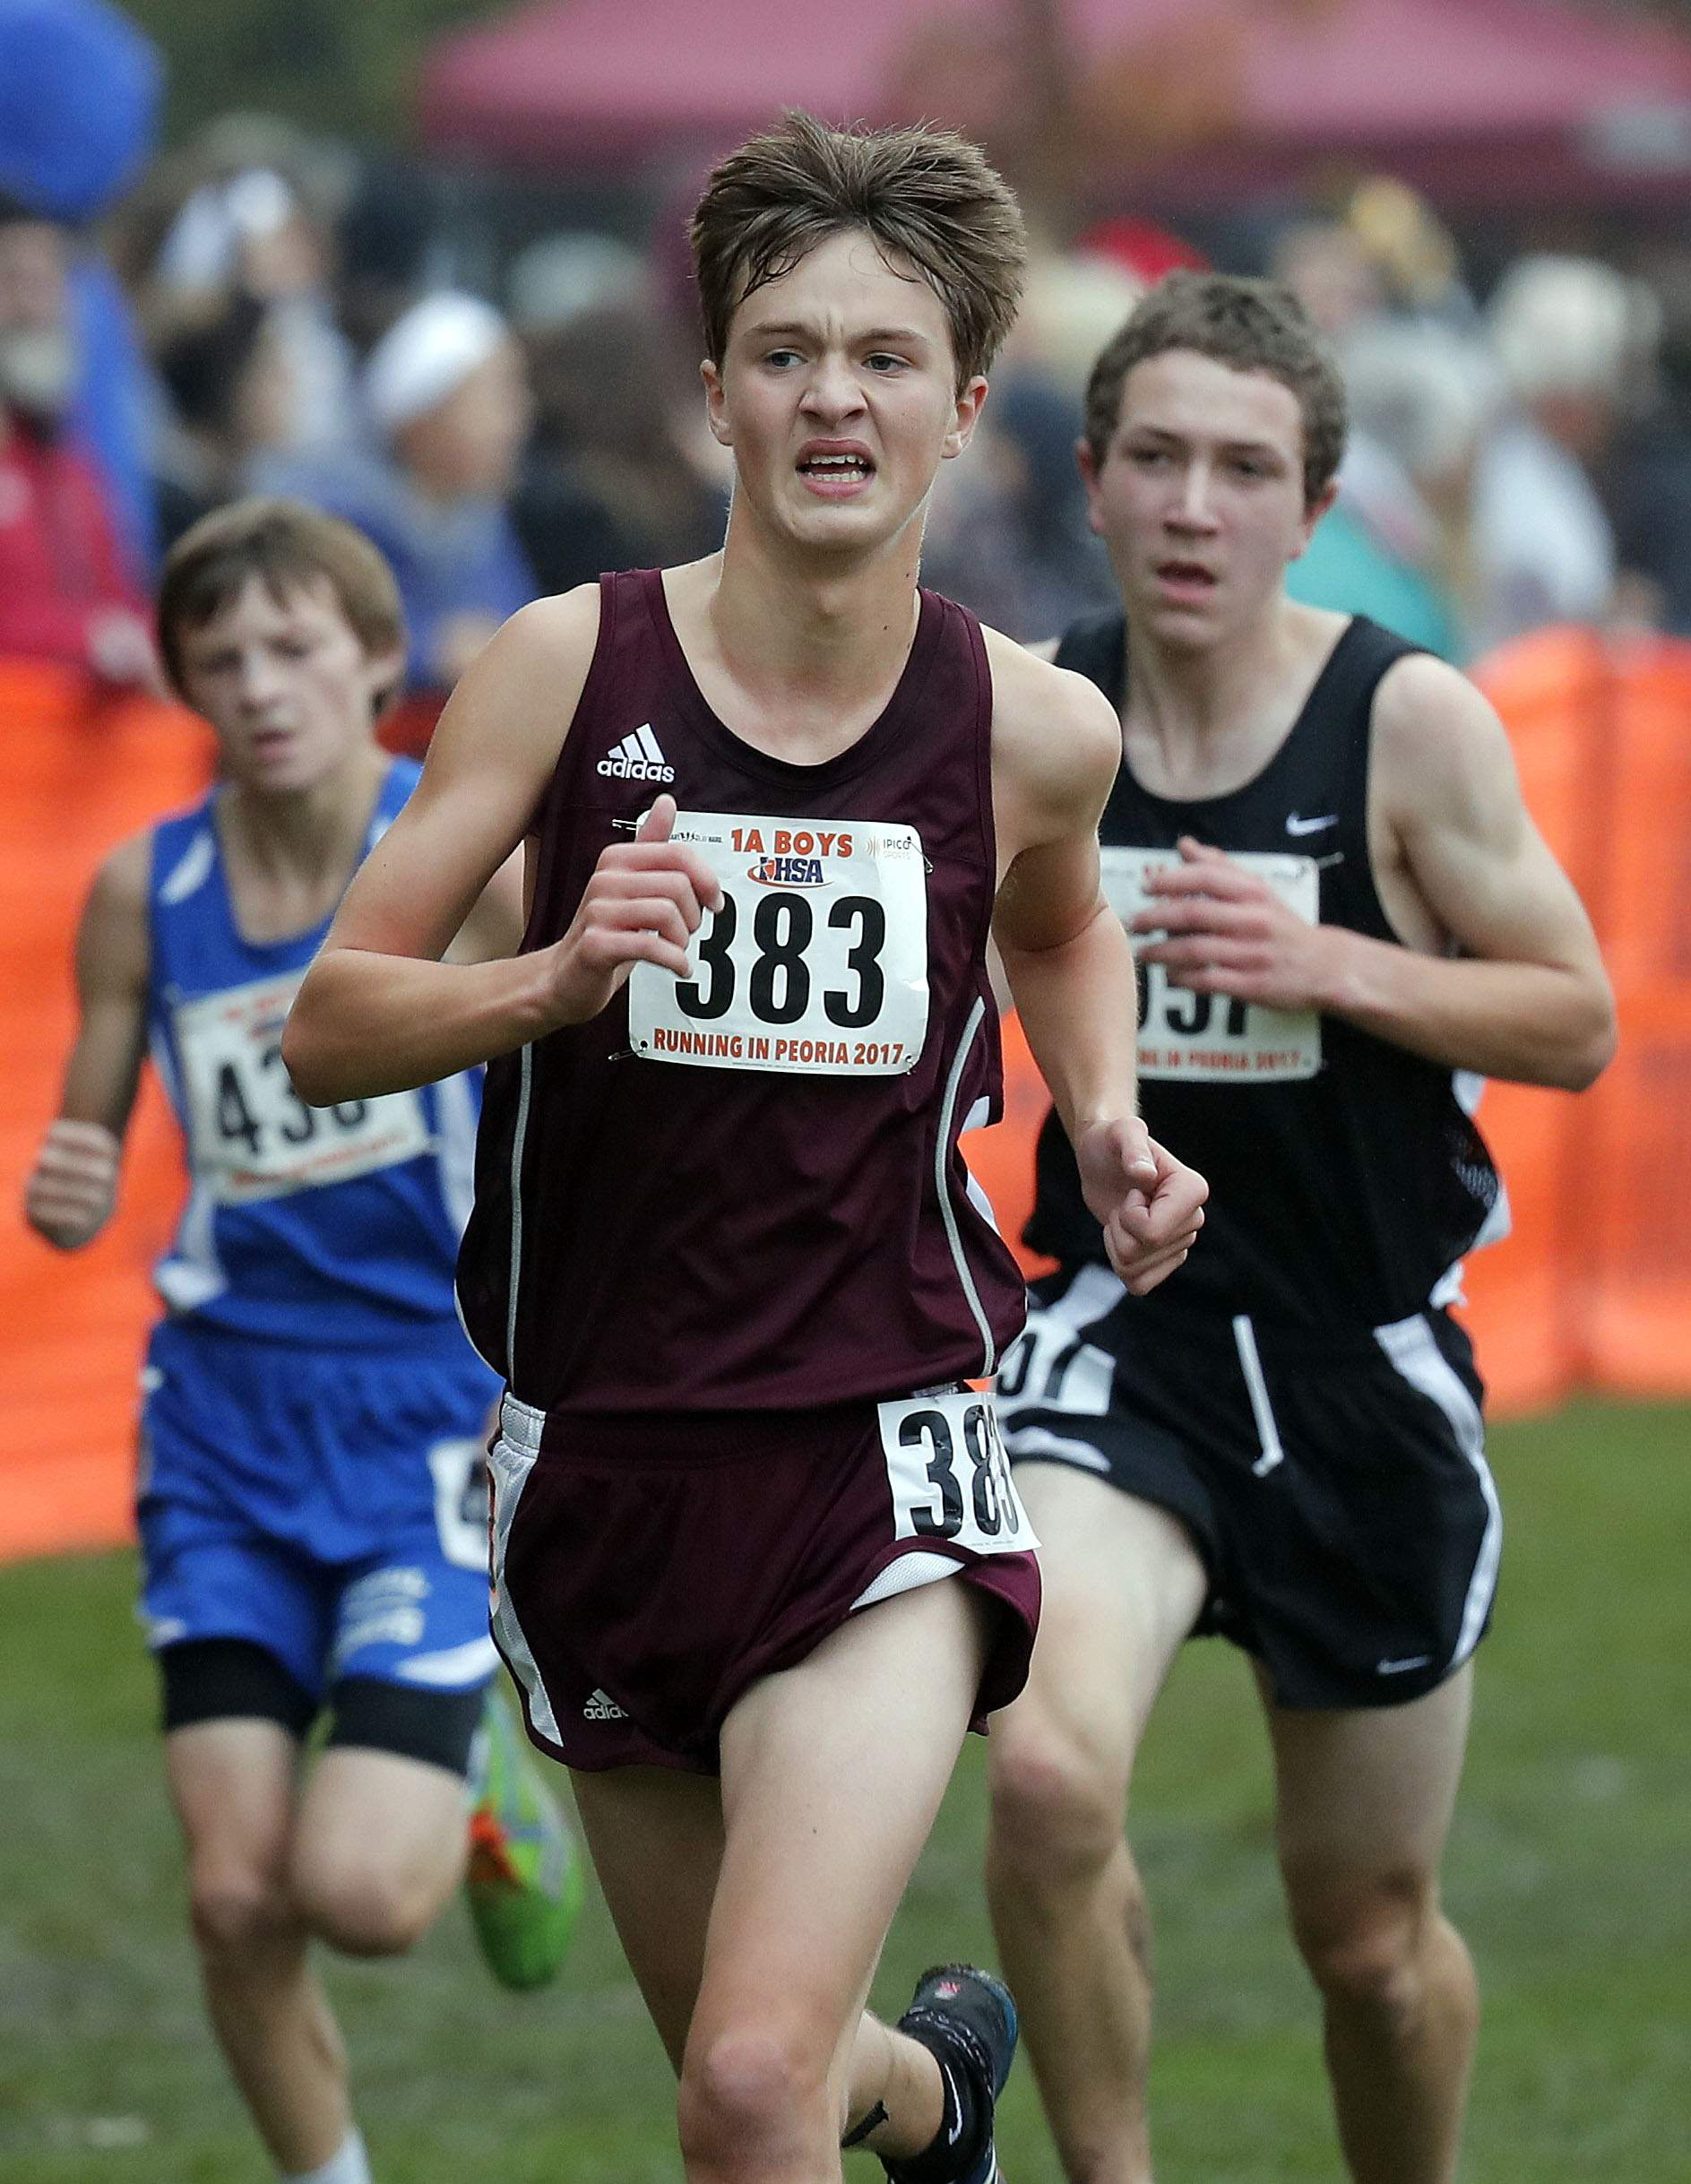 Benton's Brady Gischer heads to the finish line during the boys Class 1A cross-country finals Saturday in Peoria.